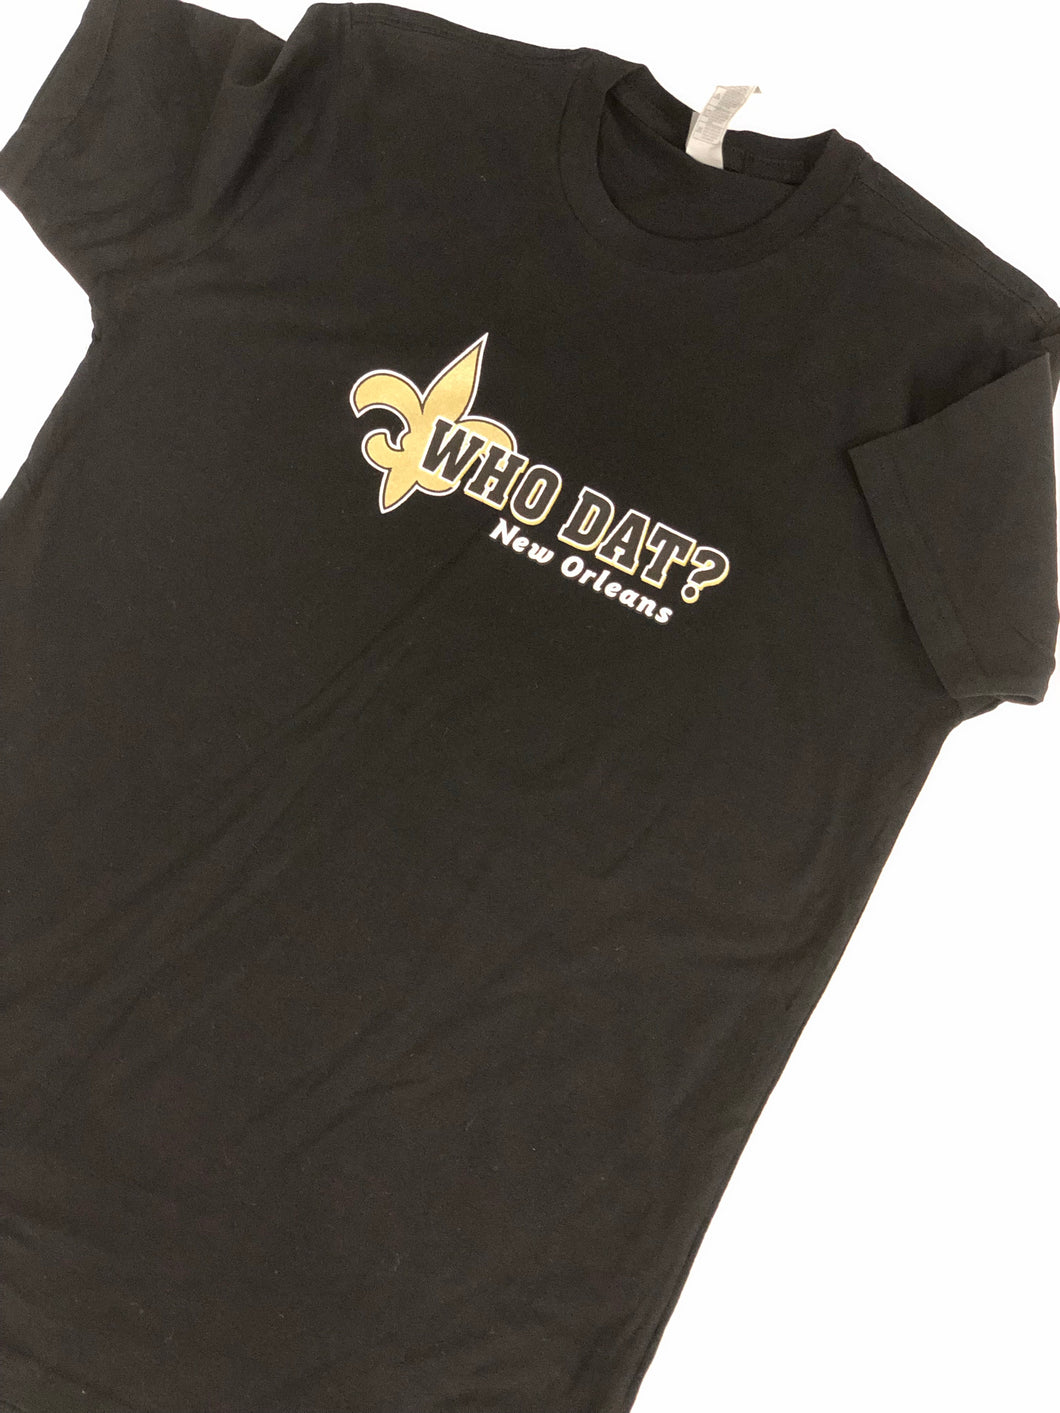 Who Dat Black and Gold T-shirt